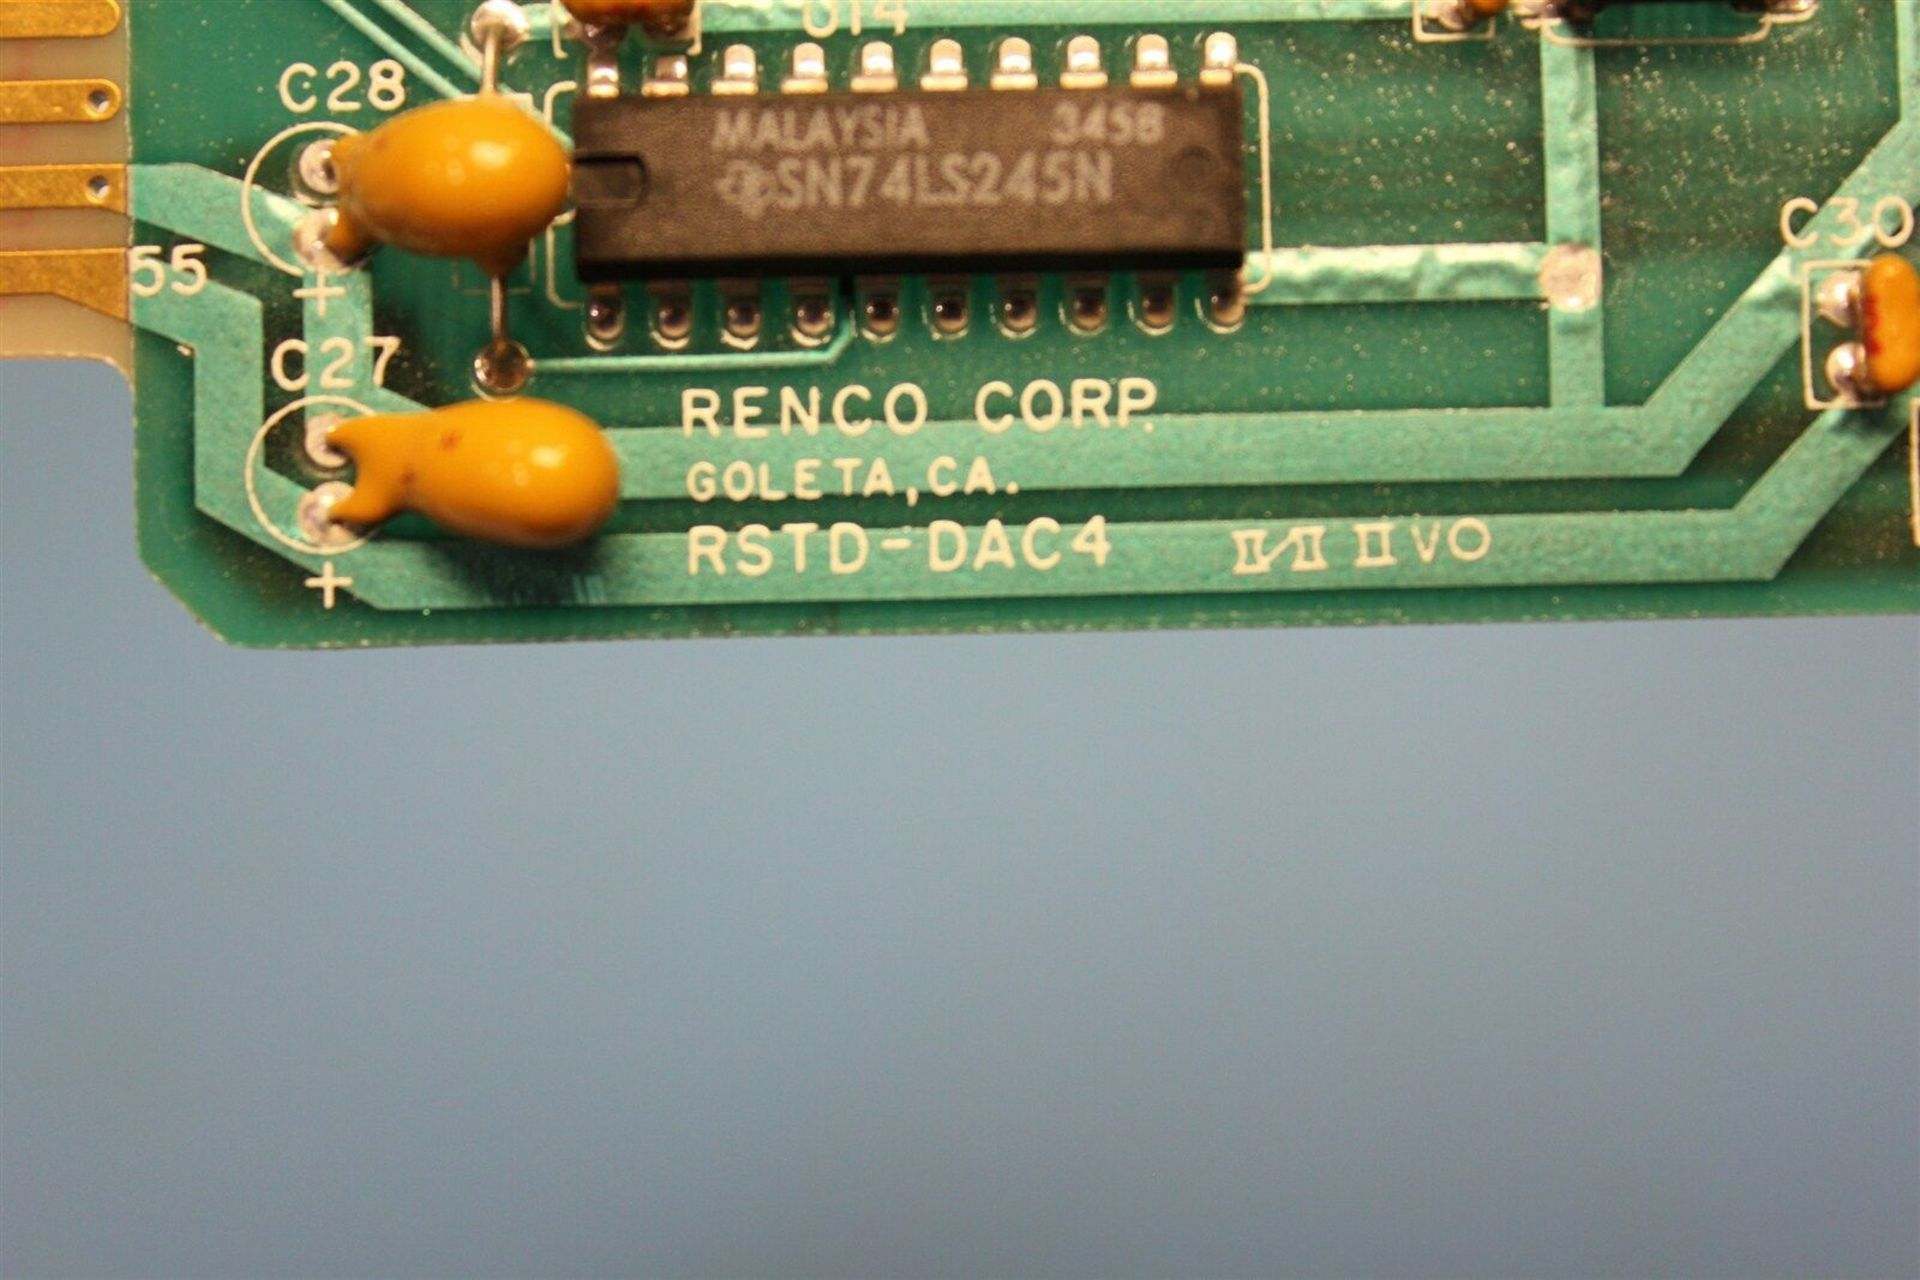 RENCO D/A CONVERTER MOTION CONTROL BOARD - Image 4 of 4